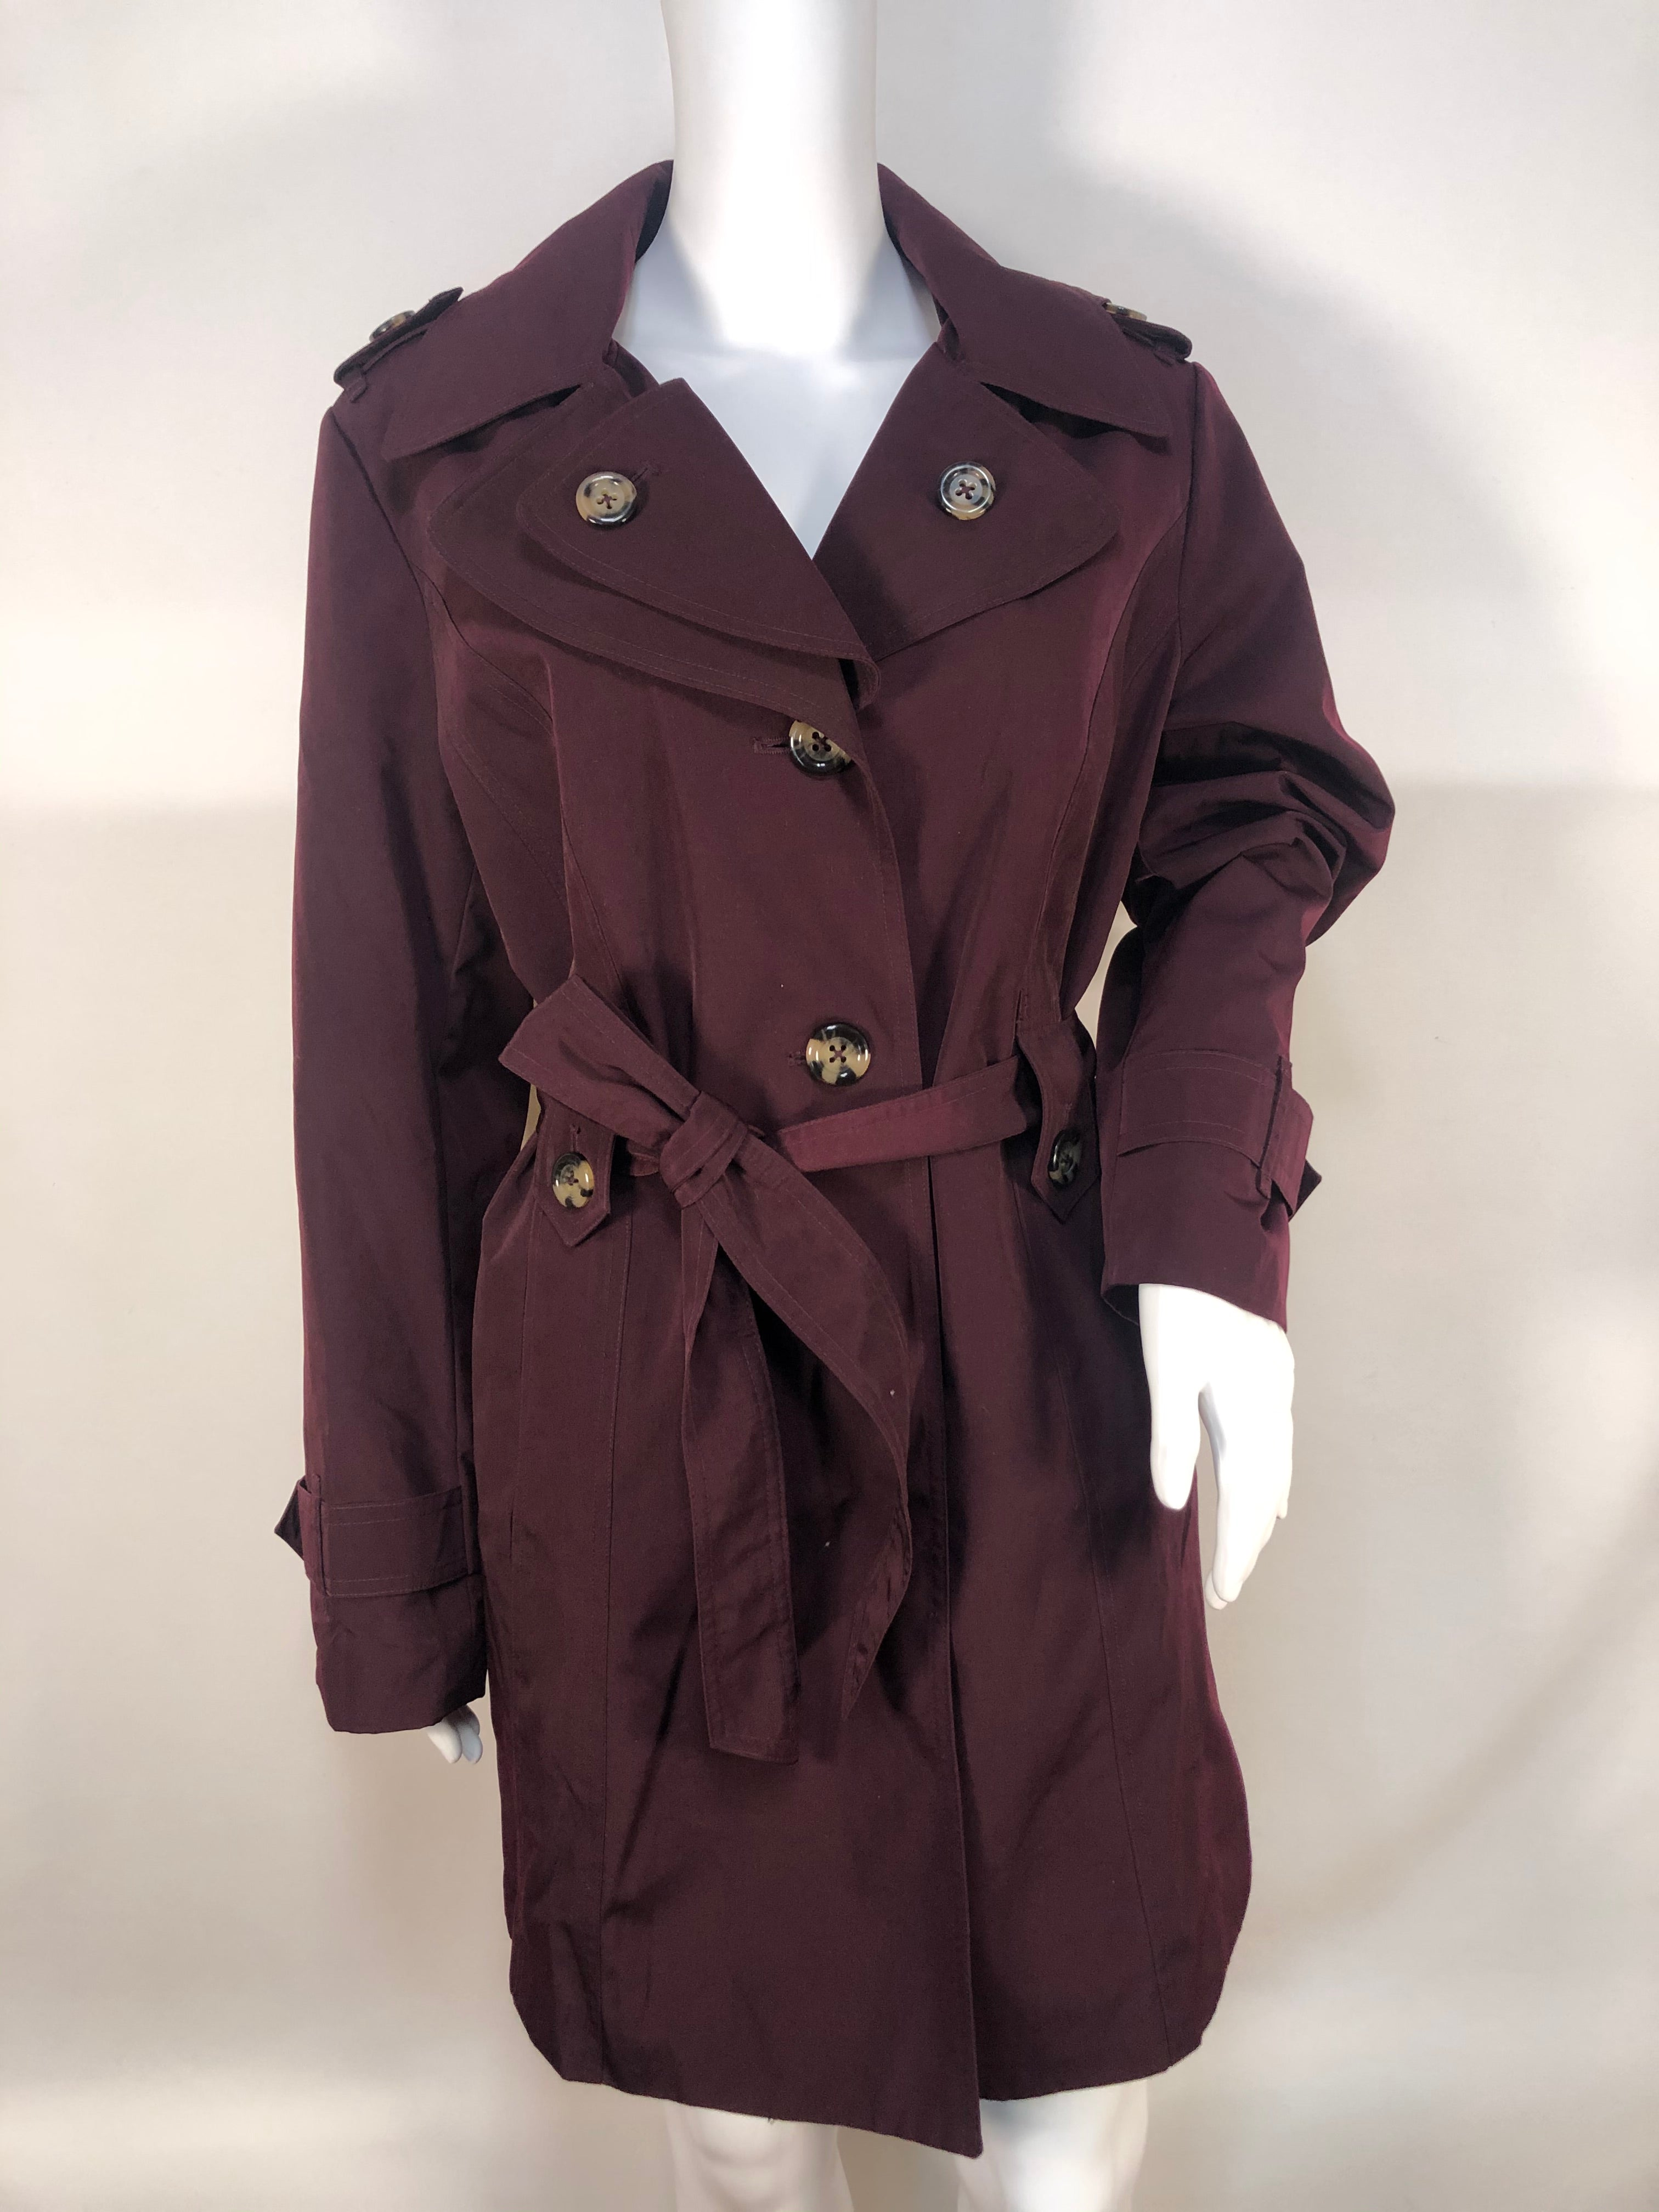 London Fog Jacket Outdoor Size:L - GORGEOUS PLUM PURPLE TRENCH COAT WITH TORTOISE COLORED BUTTONS.